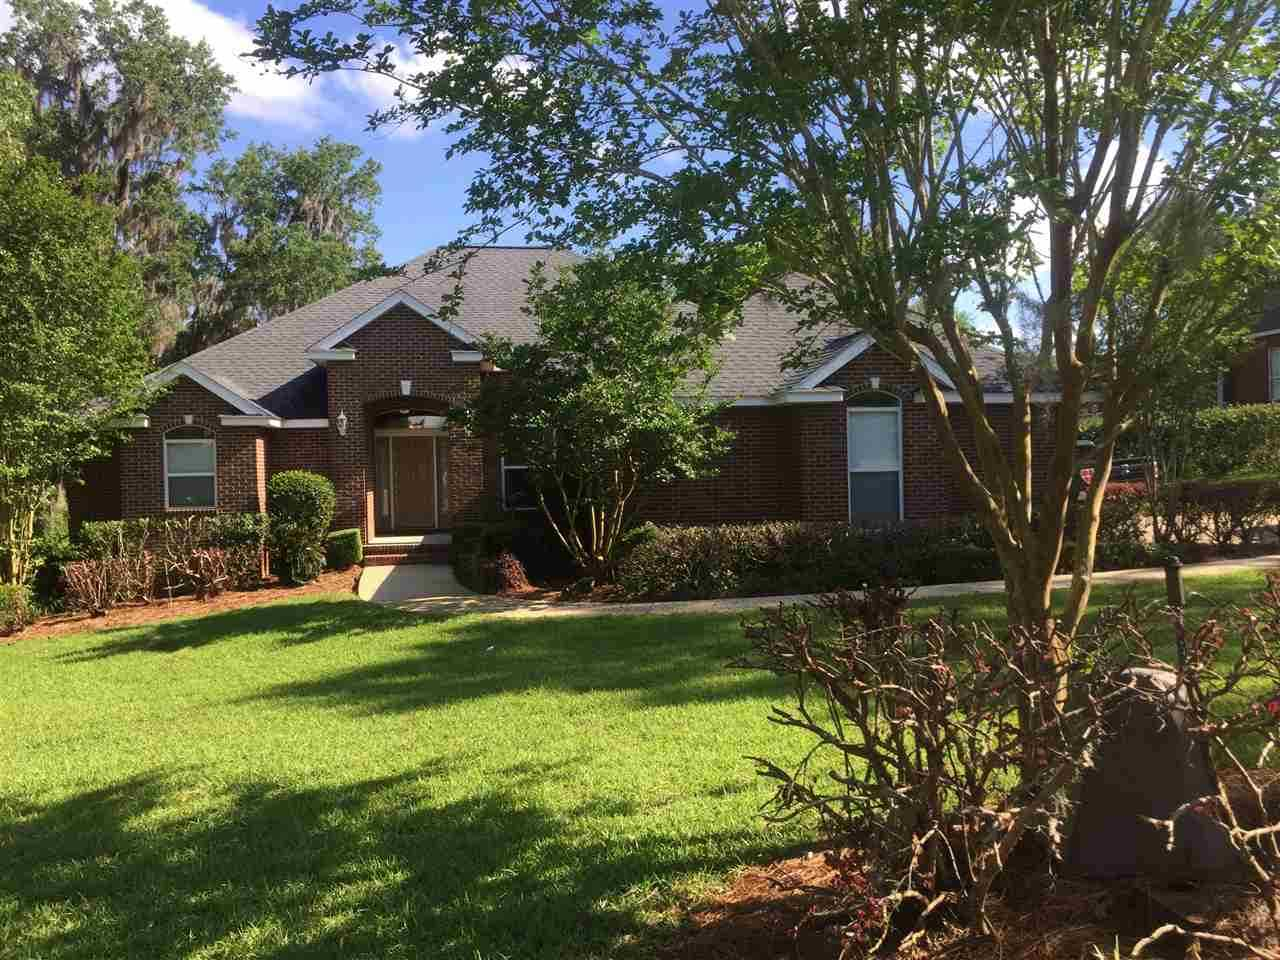 1105 Lochknoll Court Tallahassee, FL 32312 in Summerbrooke Phase 9 Photo 1